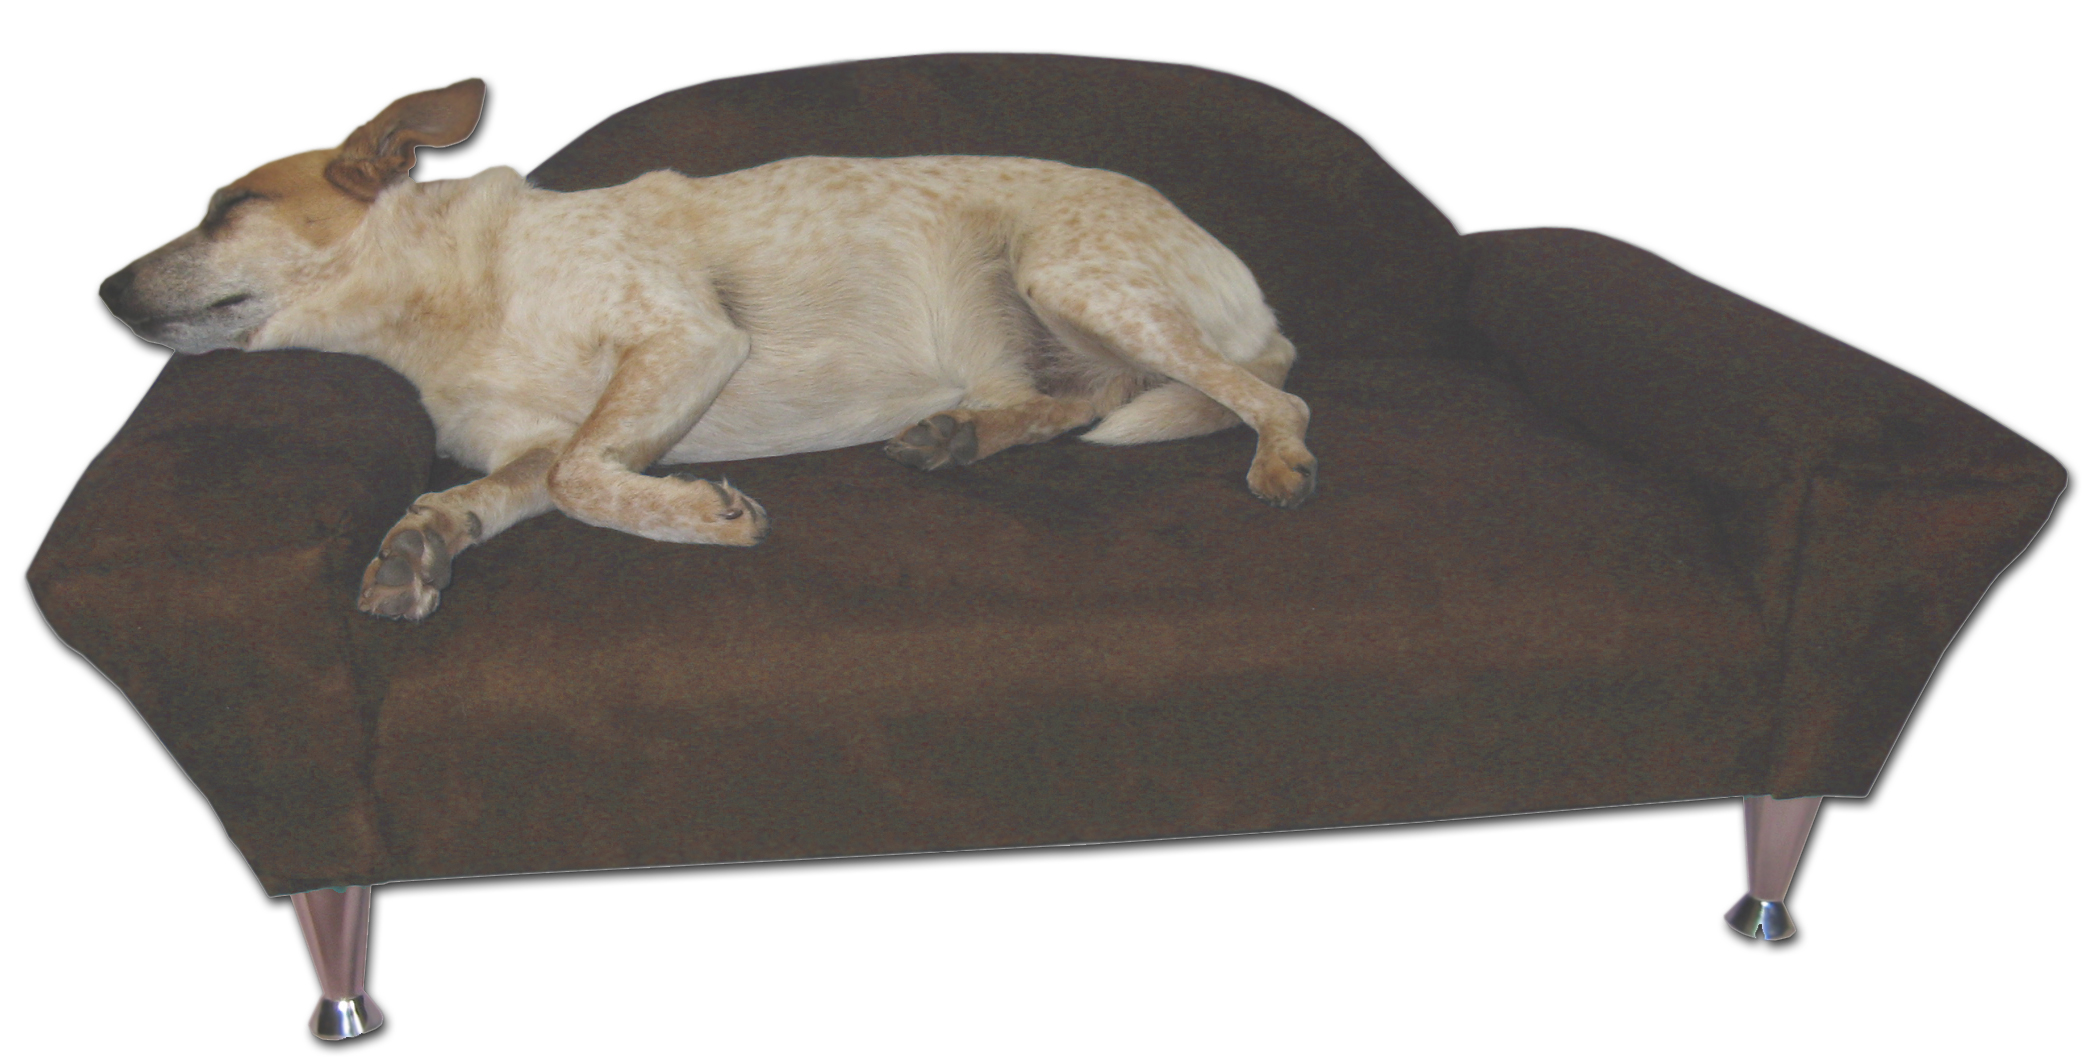 Sofa Bed For Dogs Sofa Beds